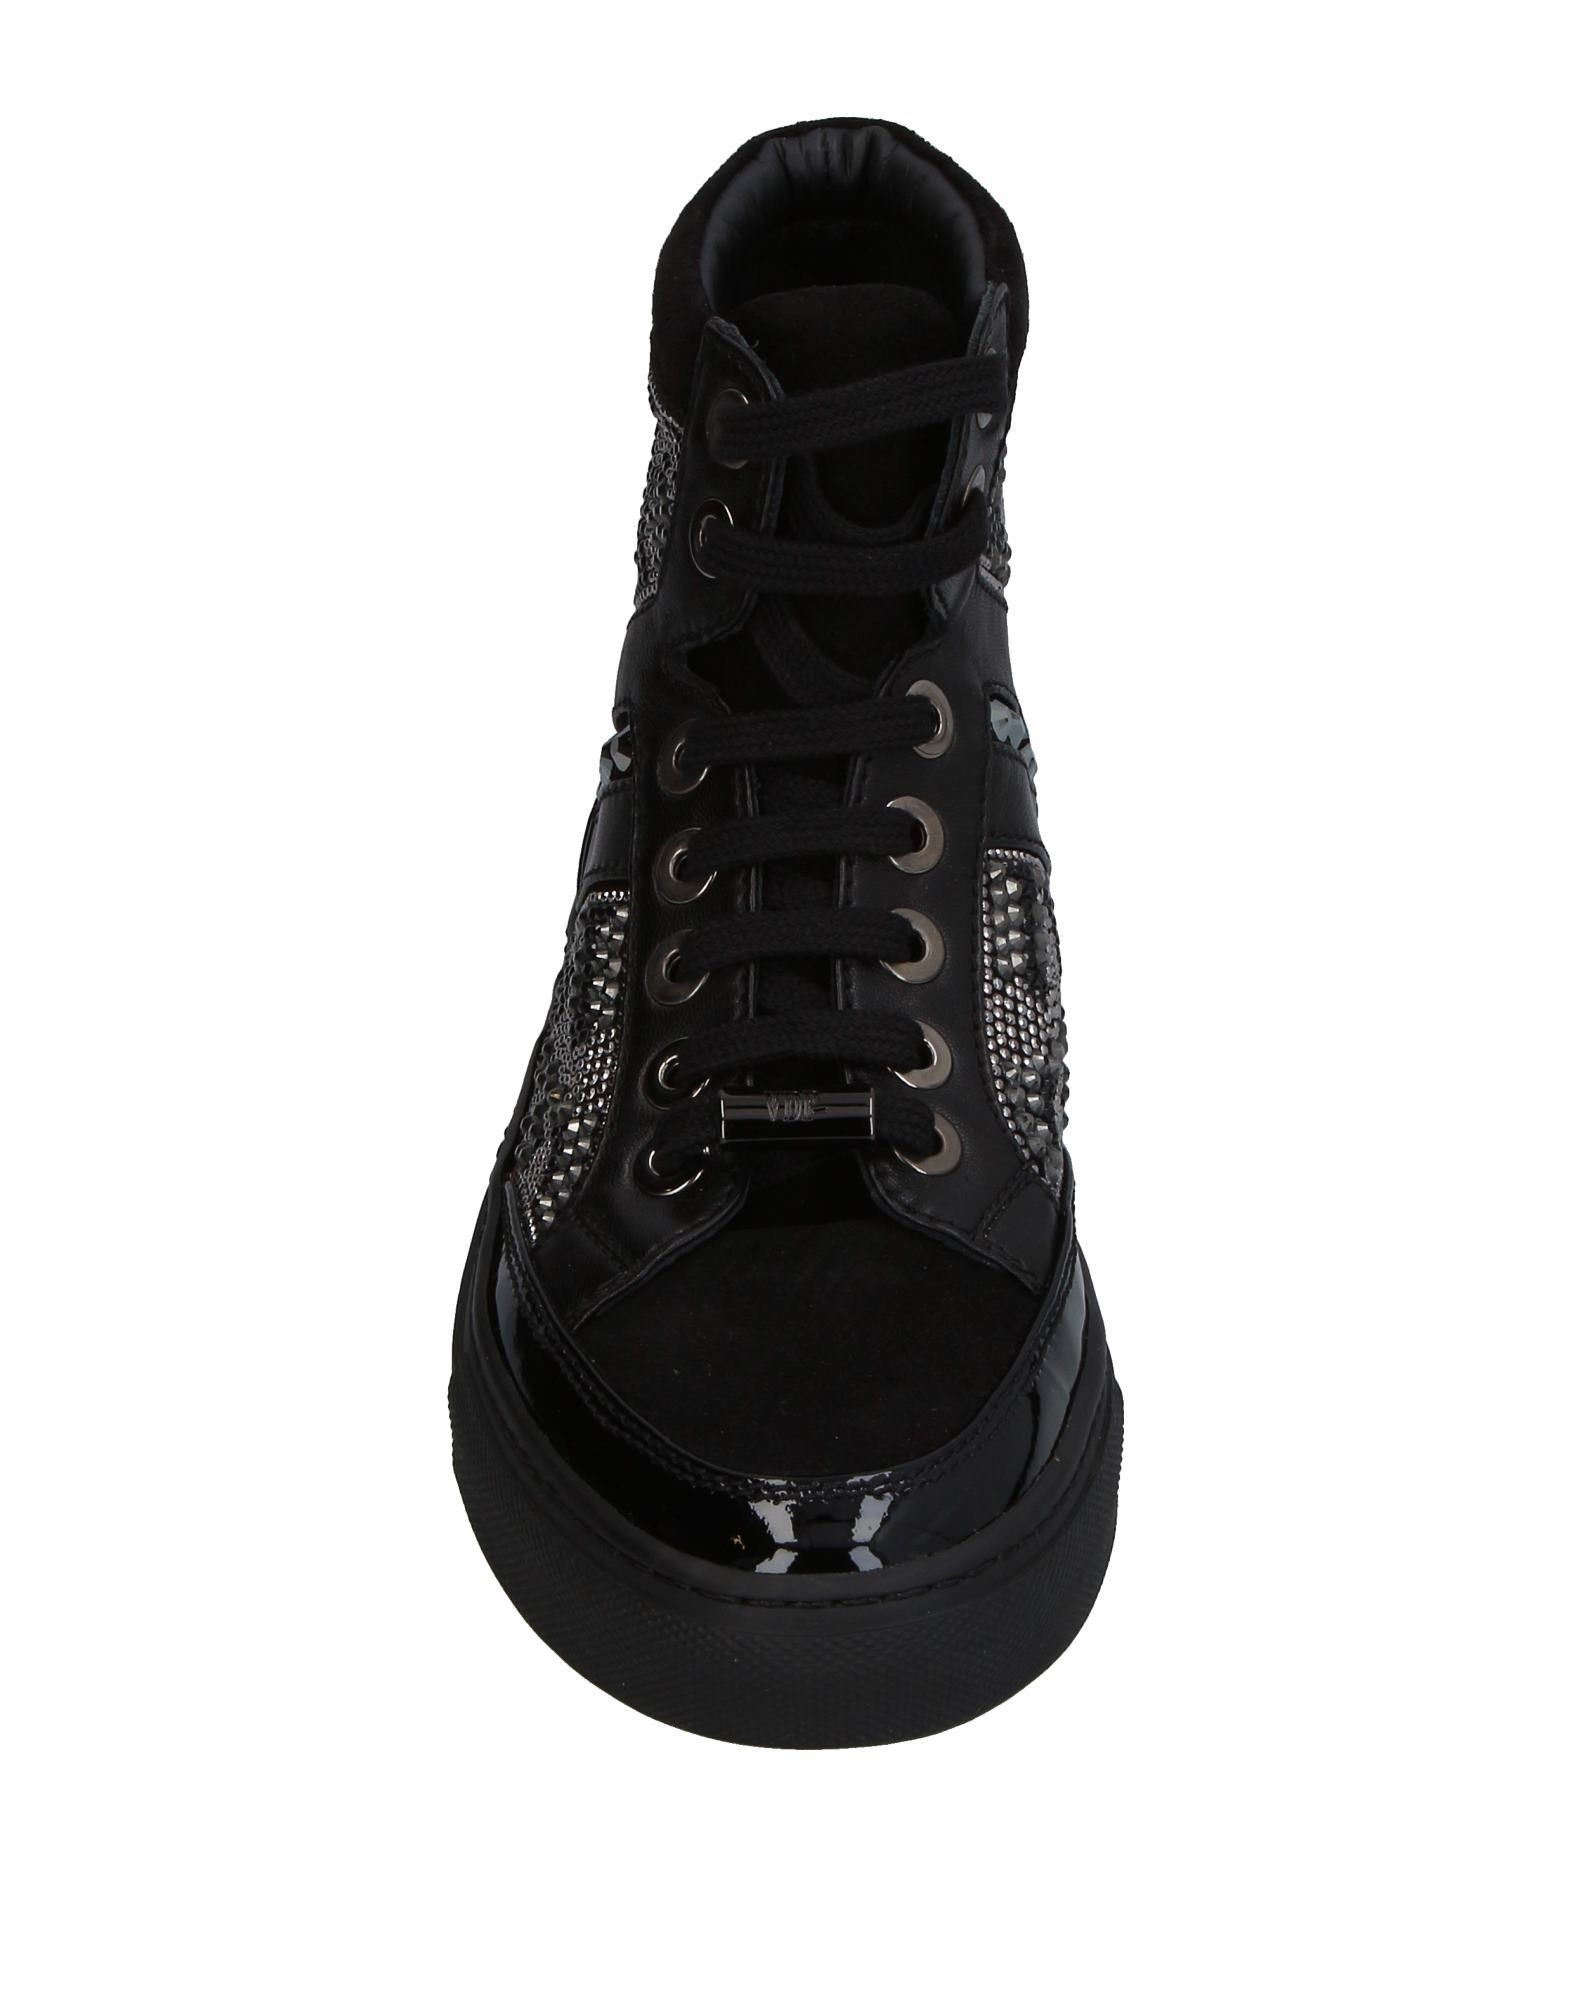 Sneakers Vdp Collection Femme - Sneakers Vdp Collection sur